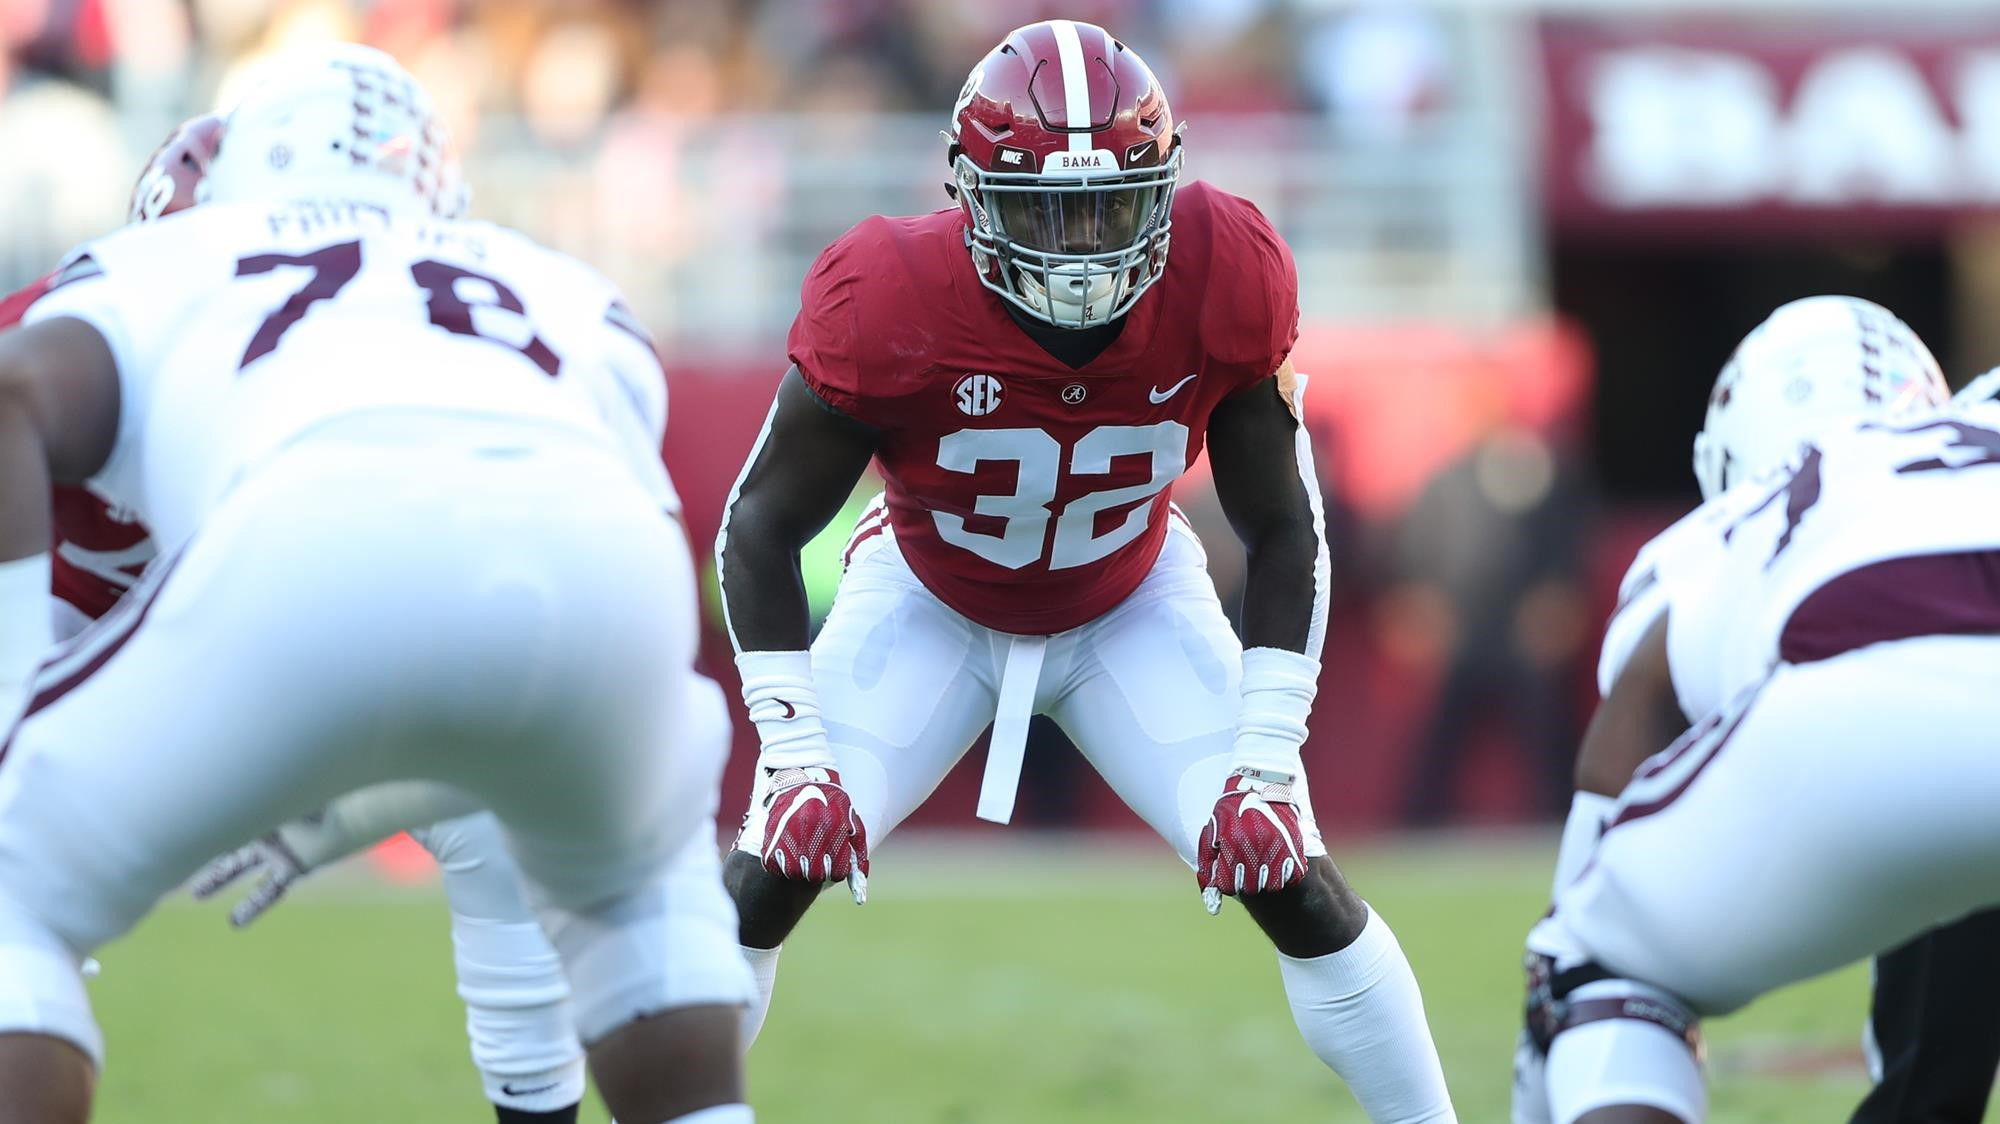 Alabama LB Dylan Moses out indefinitely with knee injury